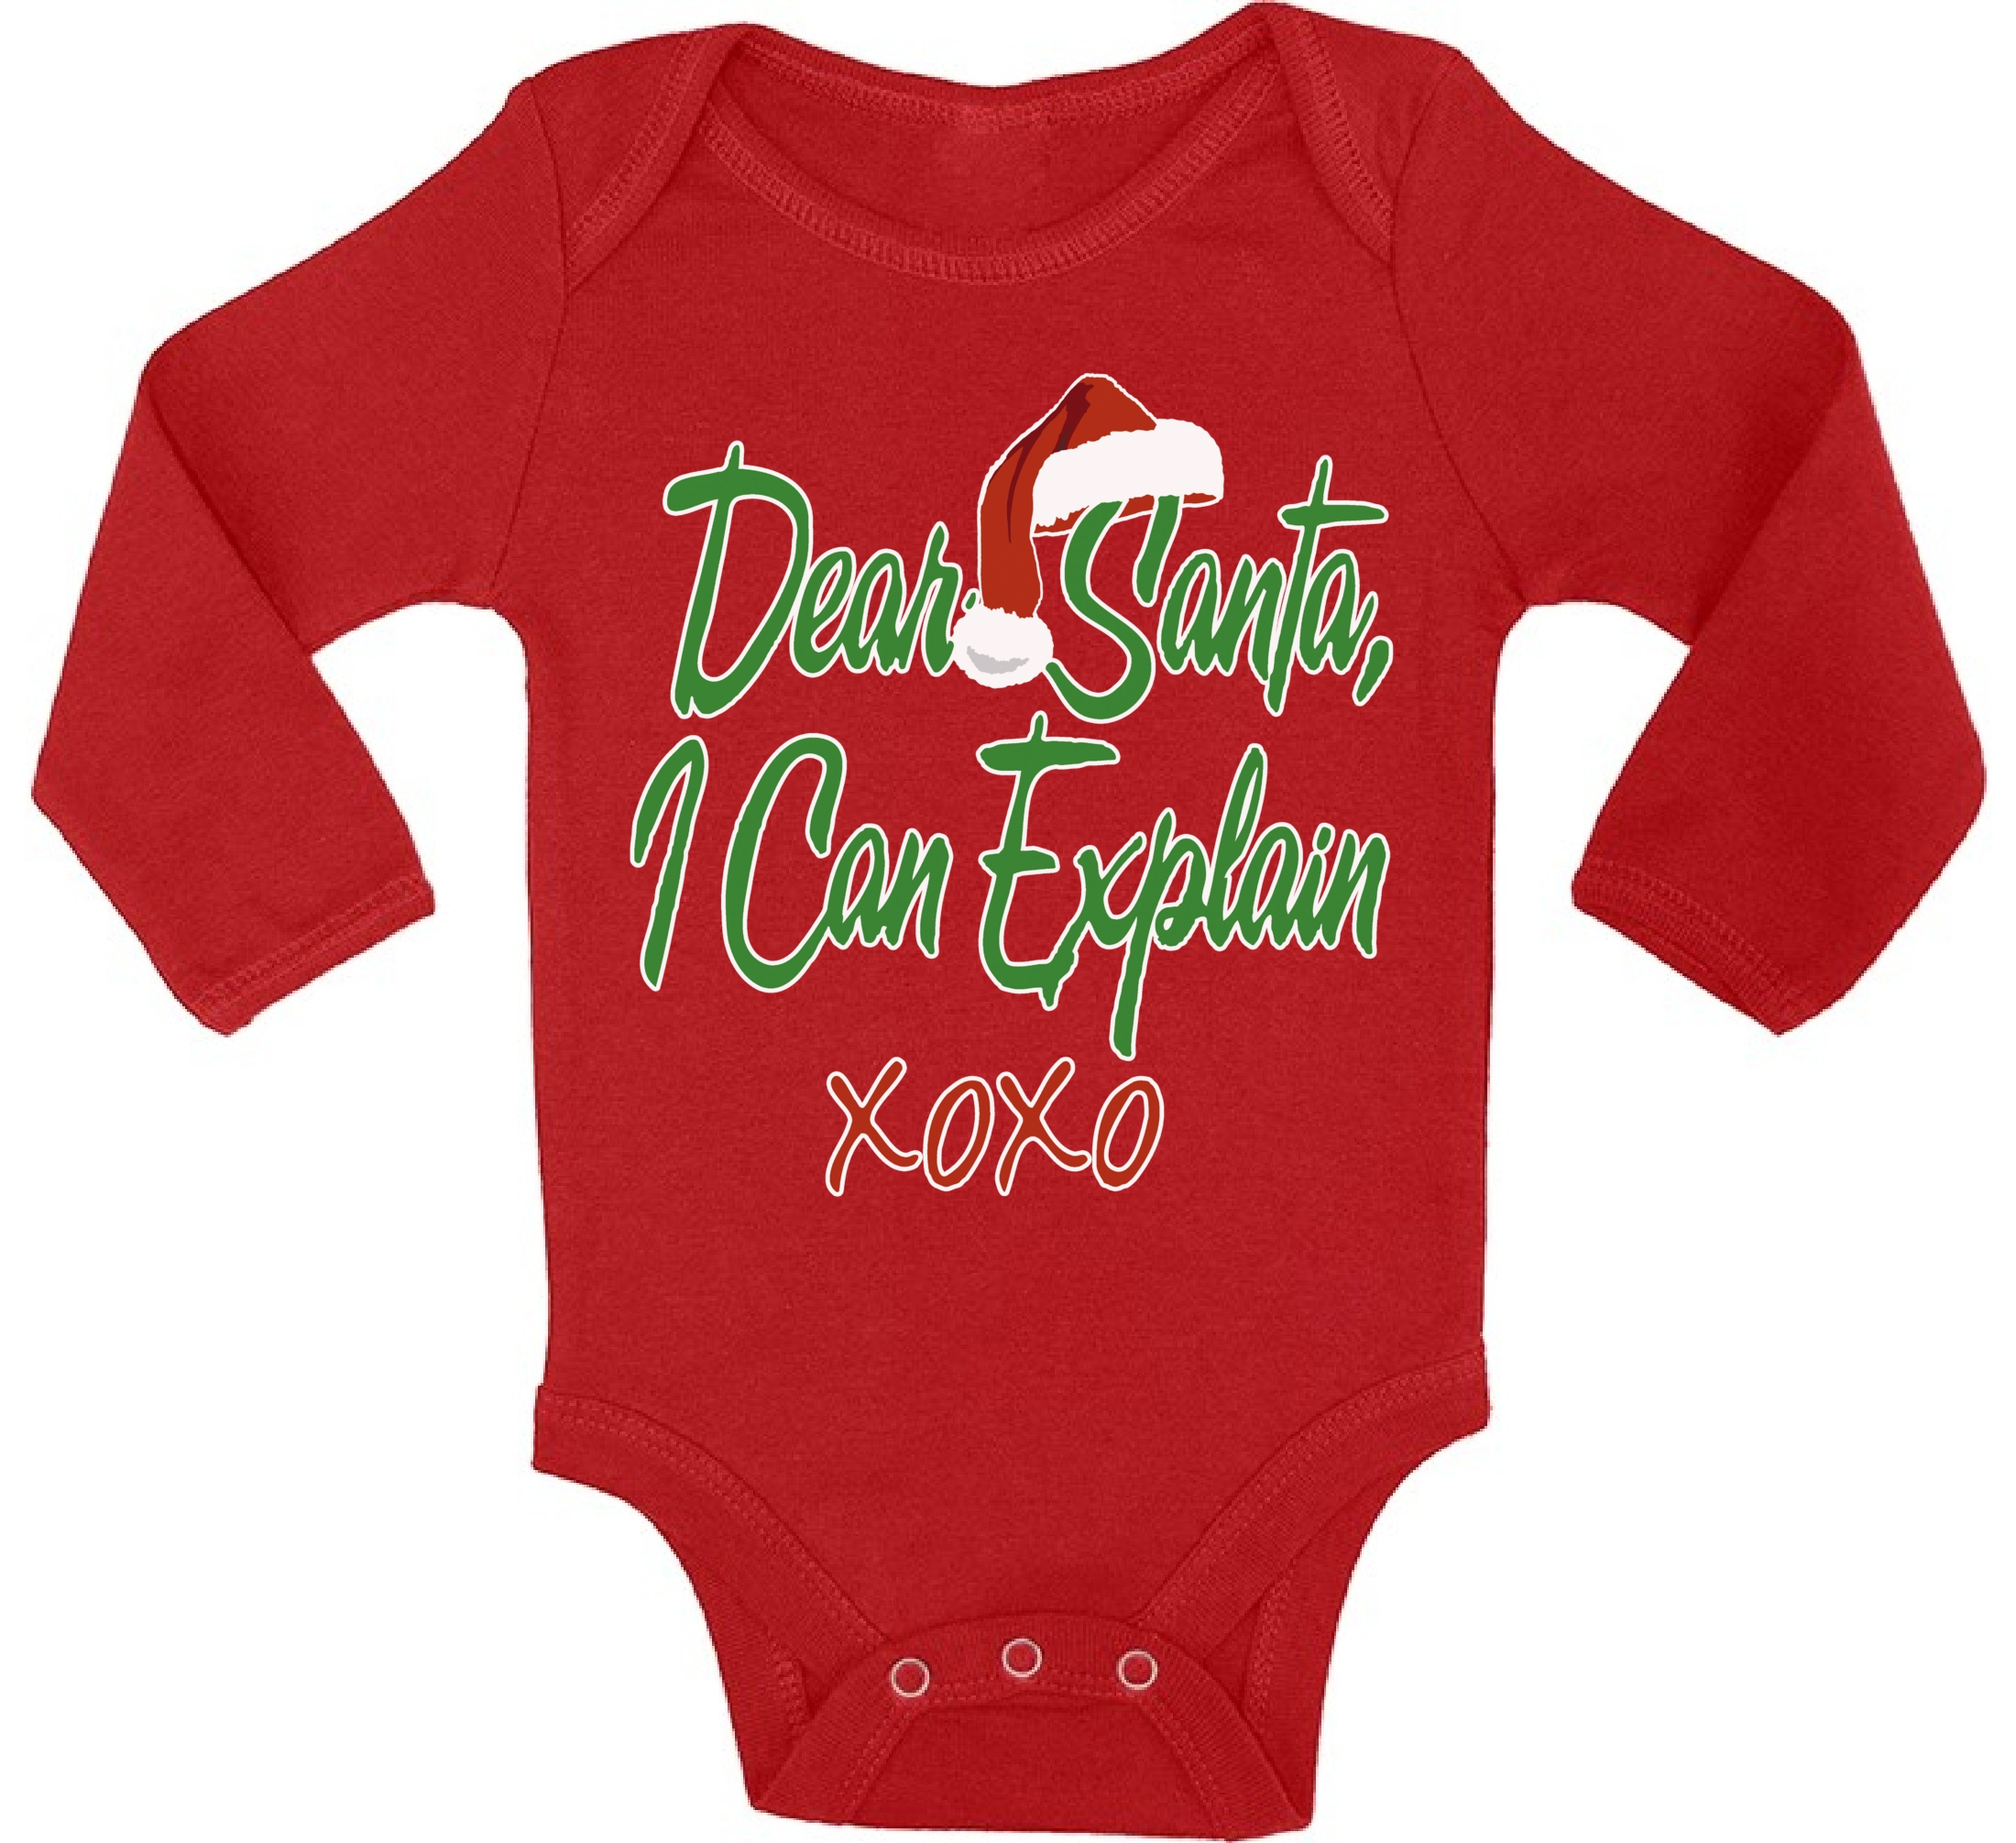 Awkward Styles Dear Santa I Can Explain XOXO Christmas Baby Outfit Santa Hat Infant Bodysuit Prop Baby Newborn Boy Newborn Girl First Christmas Clothes Funny Santa XOXO Christmas Bodysuit